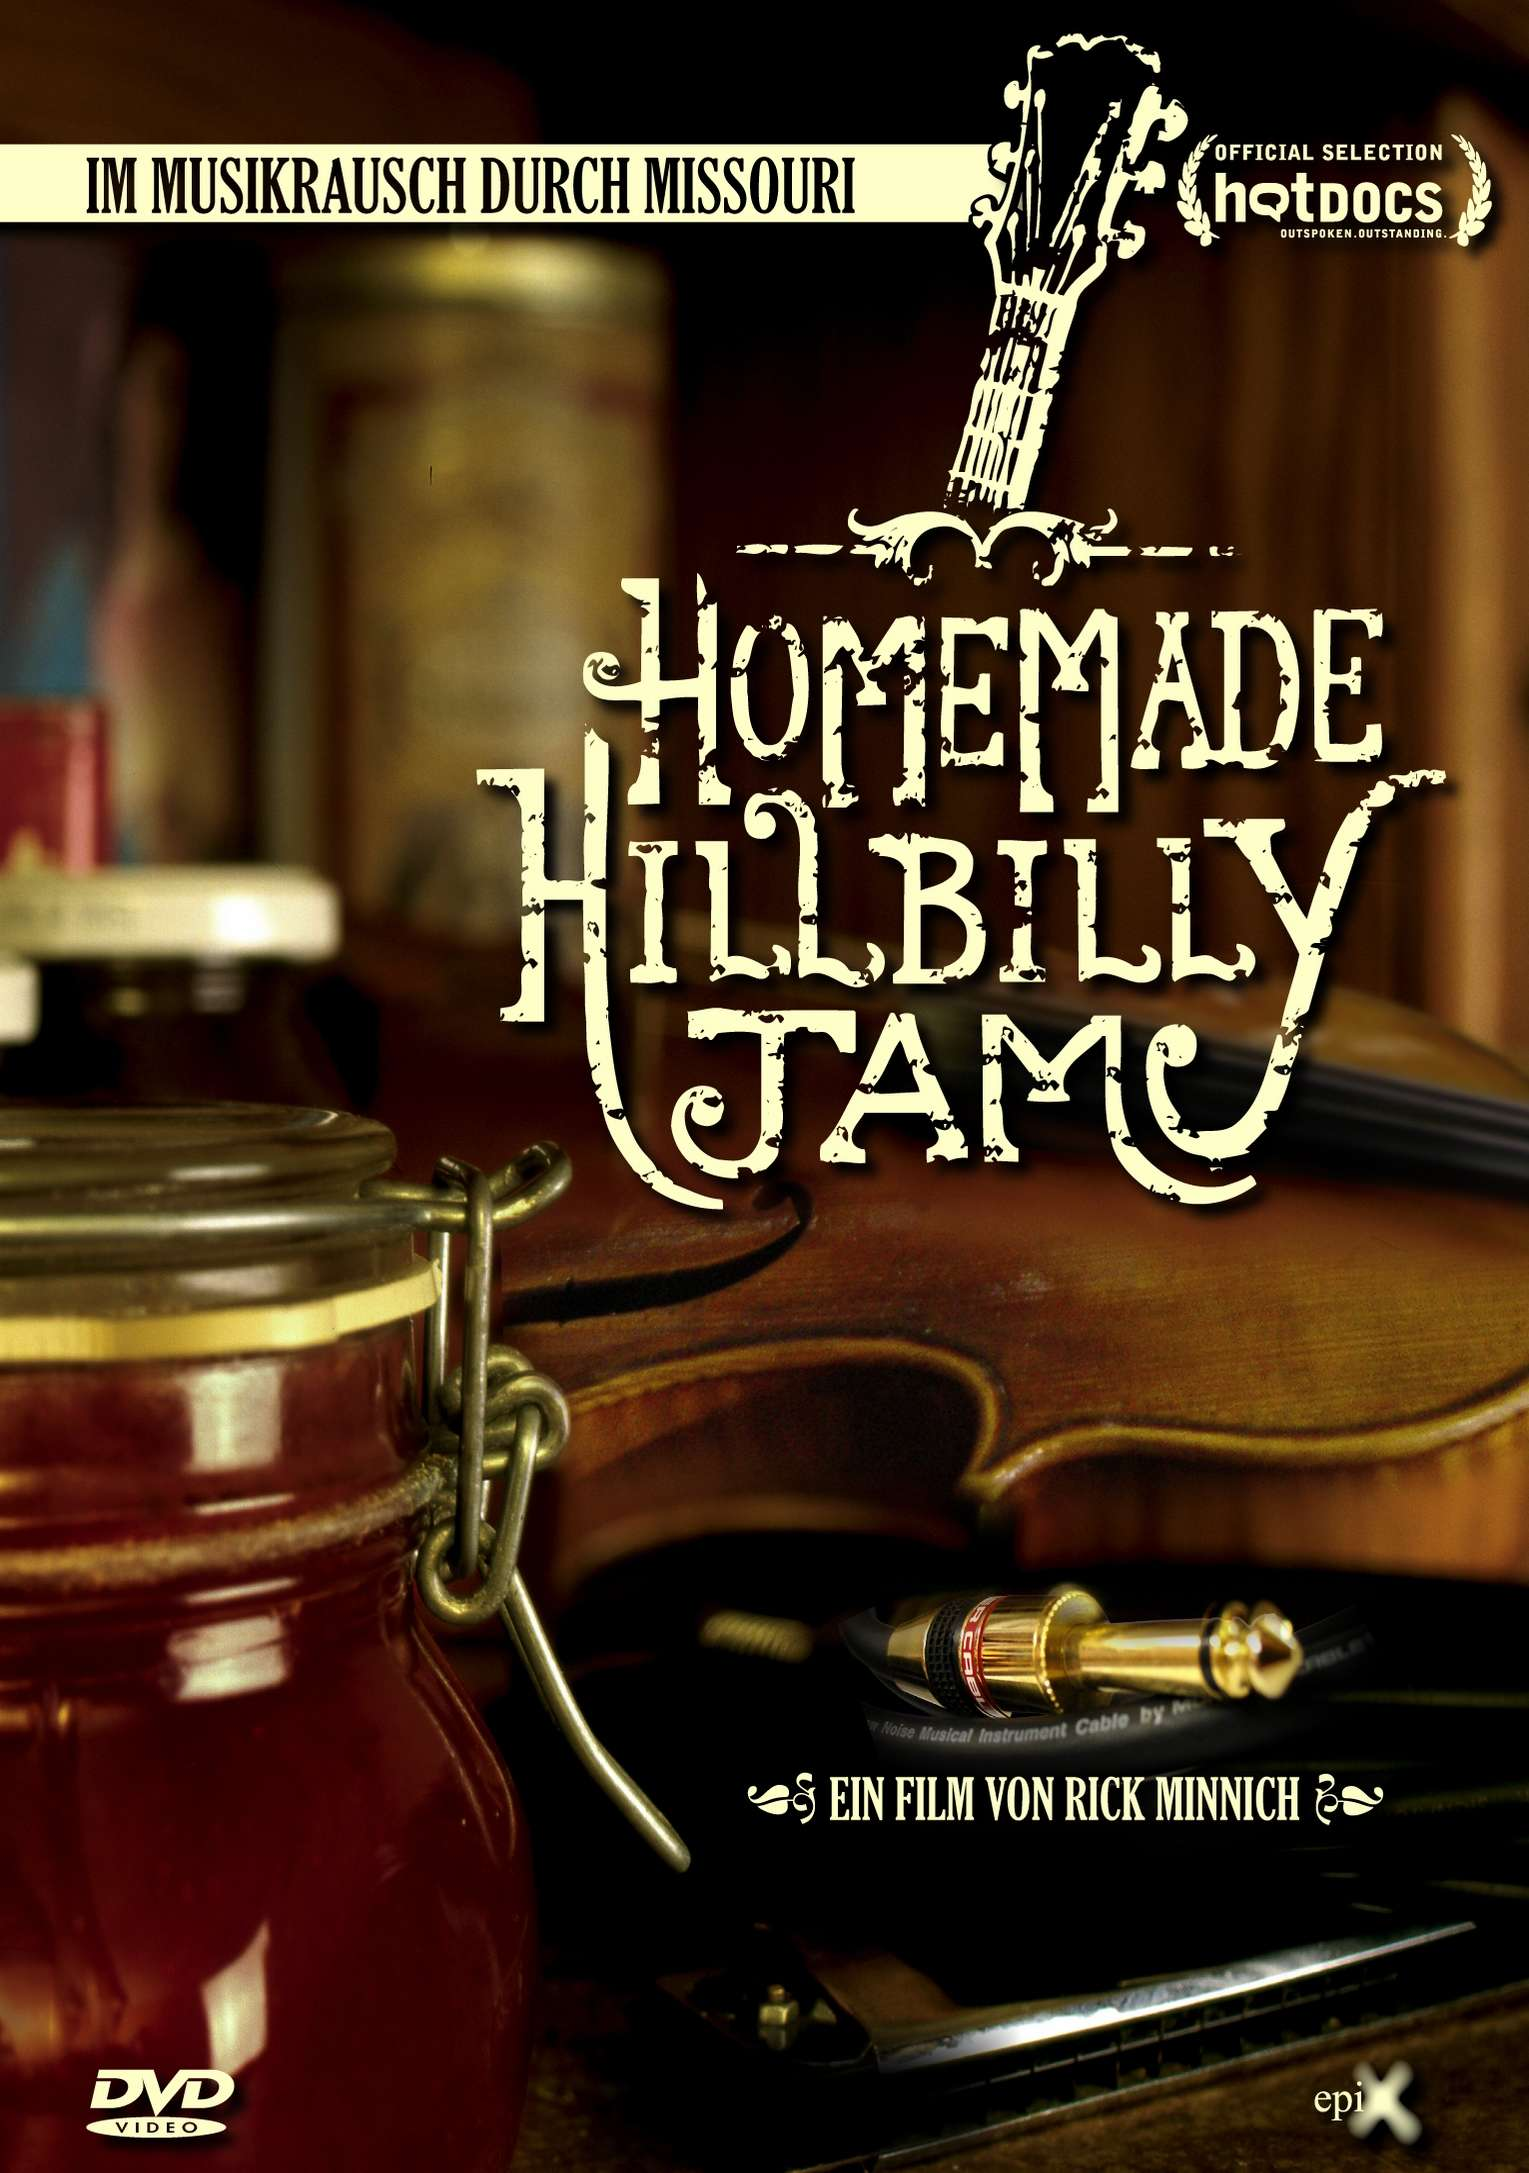 HOMEMADE HILLBILLY JAM Front FINAL